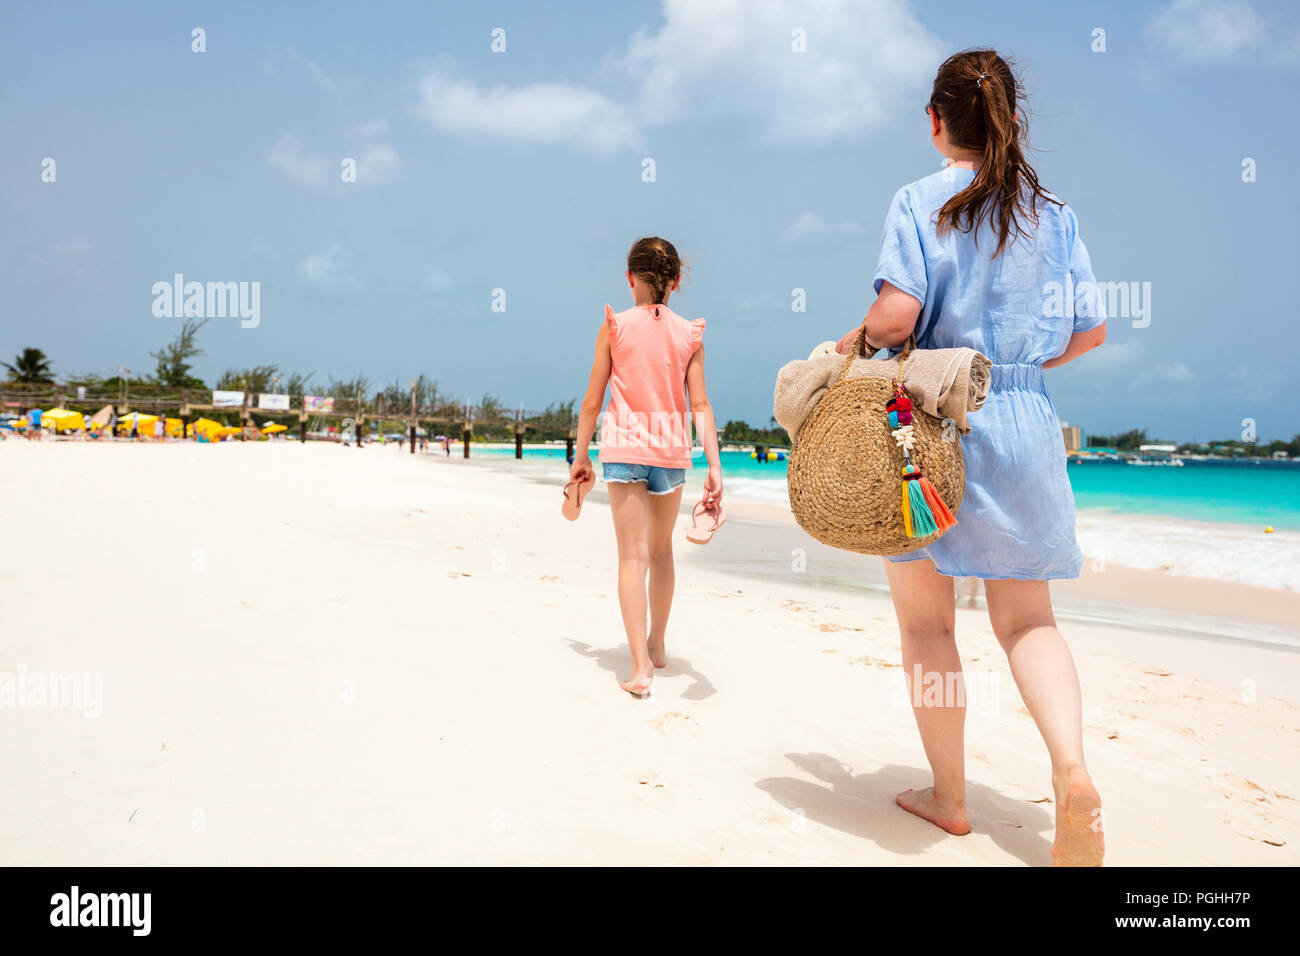 8384359b840df Back view family mother and daughter walking at beach in Barbados enjoying  tropical summer vacation